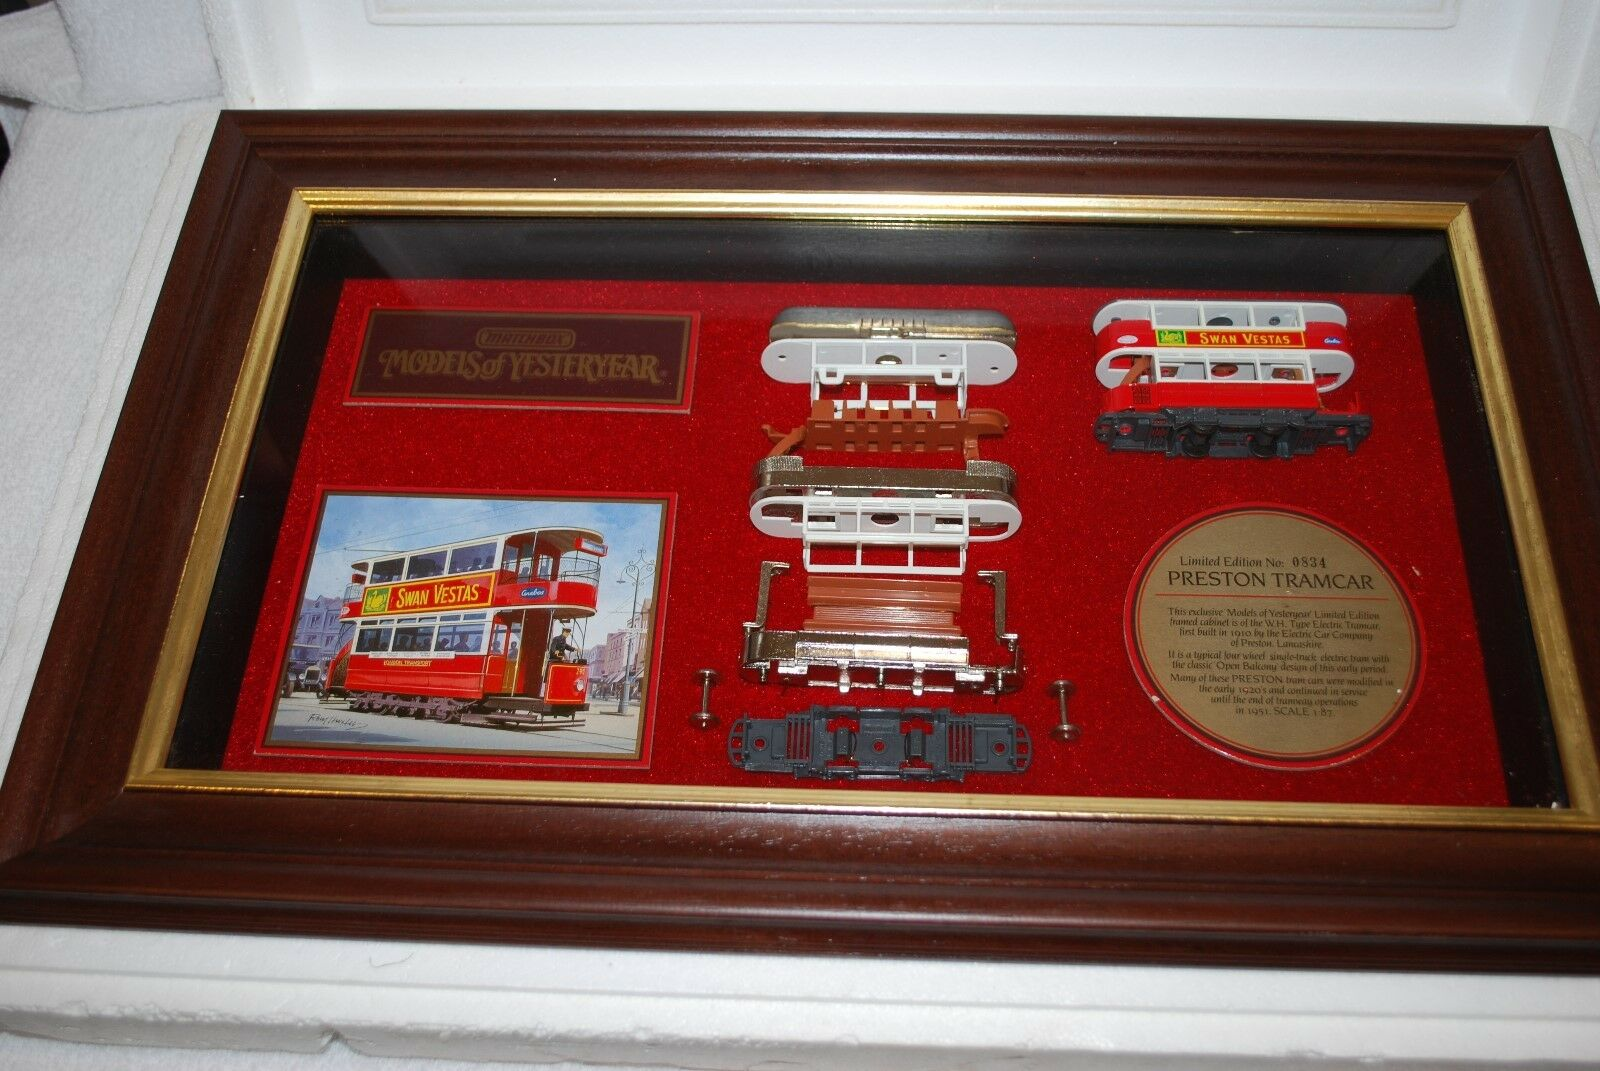 Collectable Matchbox Models of Yesteryear Ltd Edition No 0834 Preston Tramcar